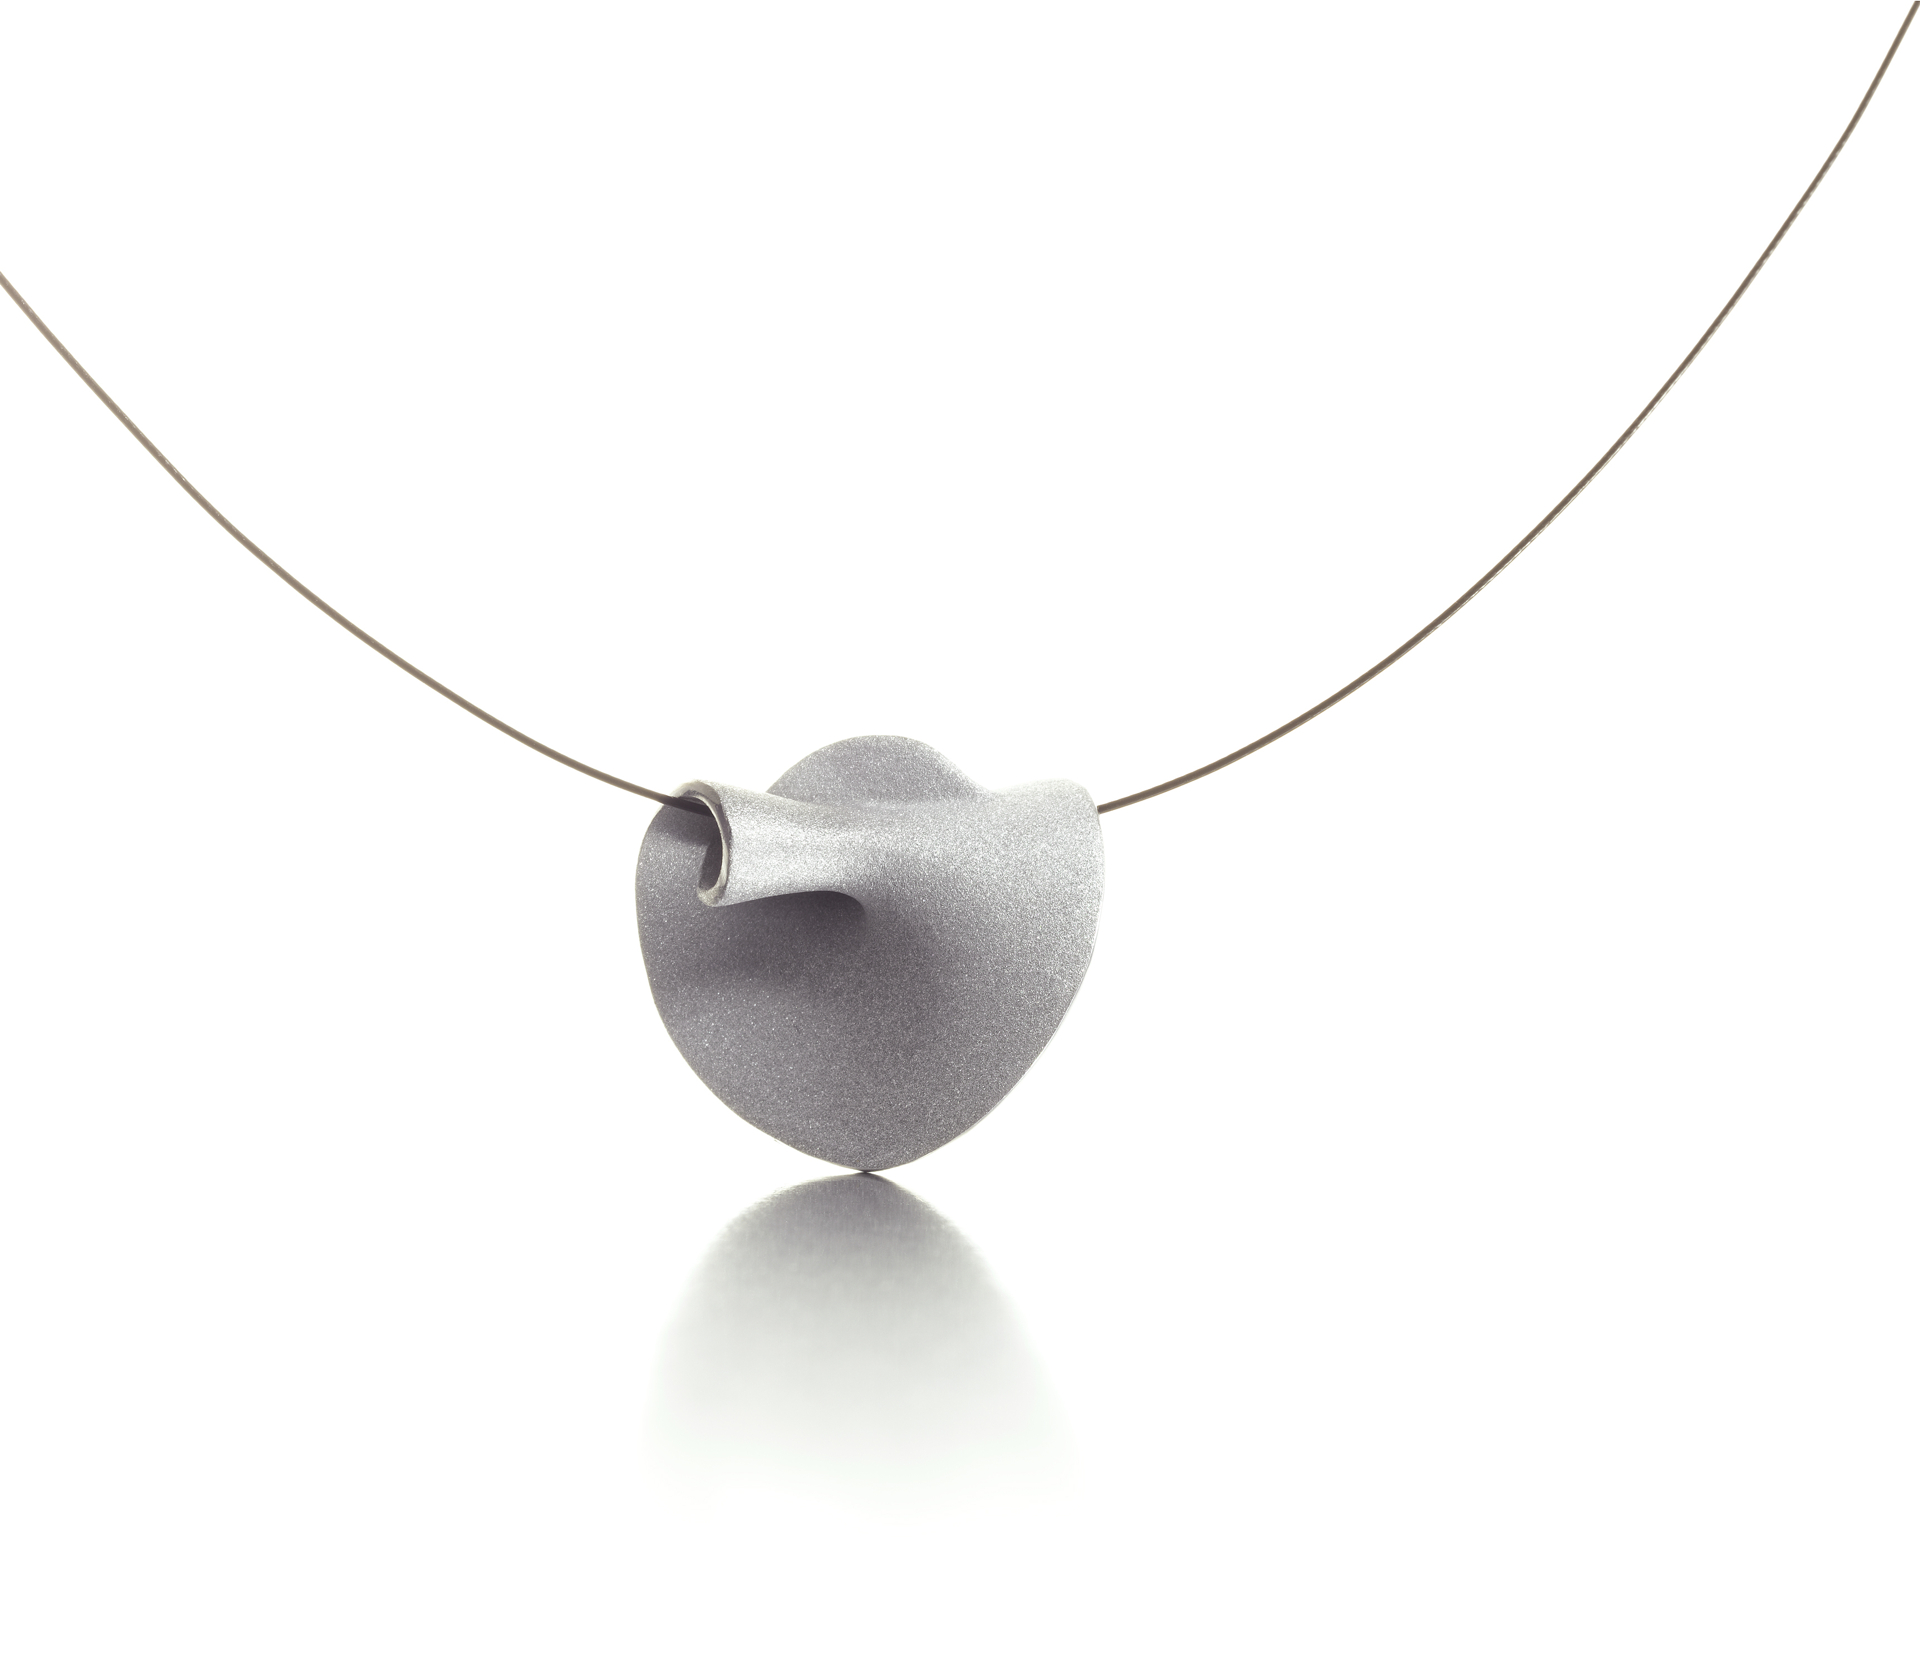 cast-sterling-silver-mobius-55-pendant